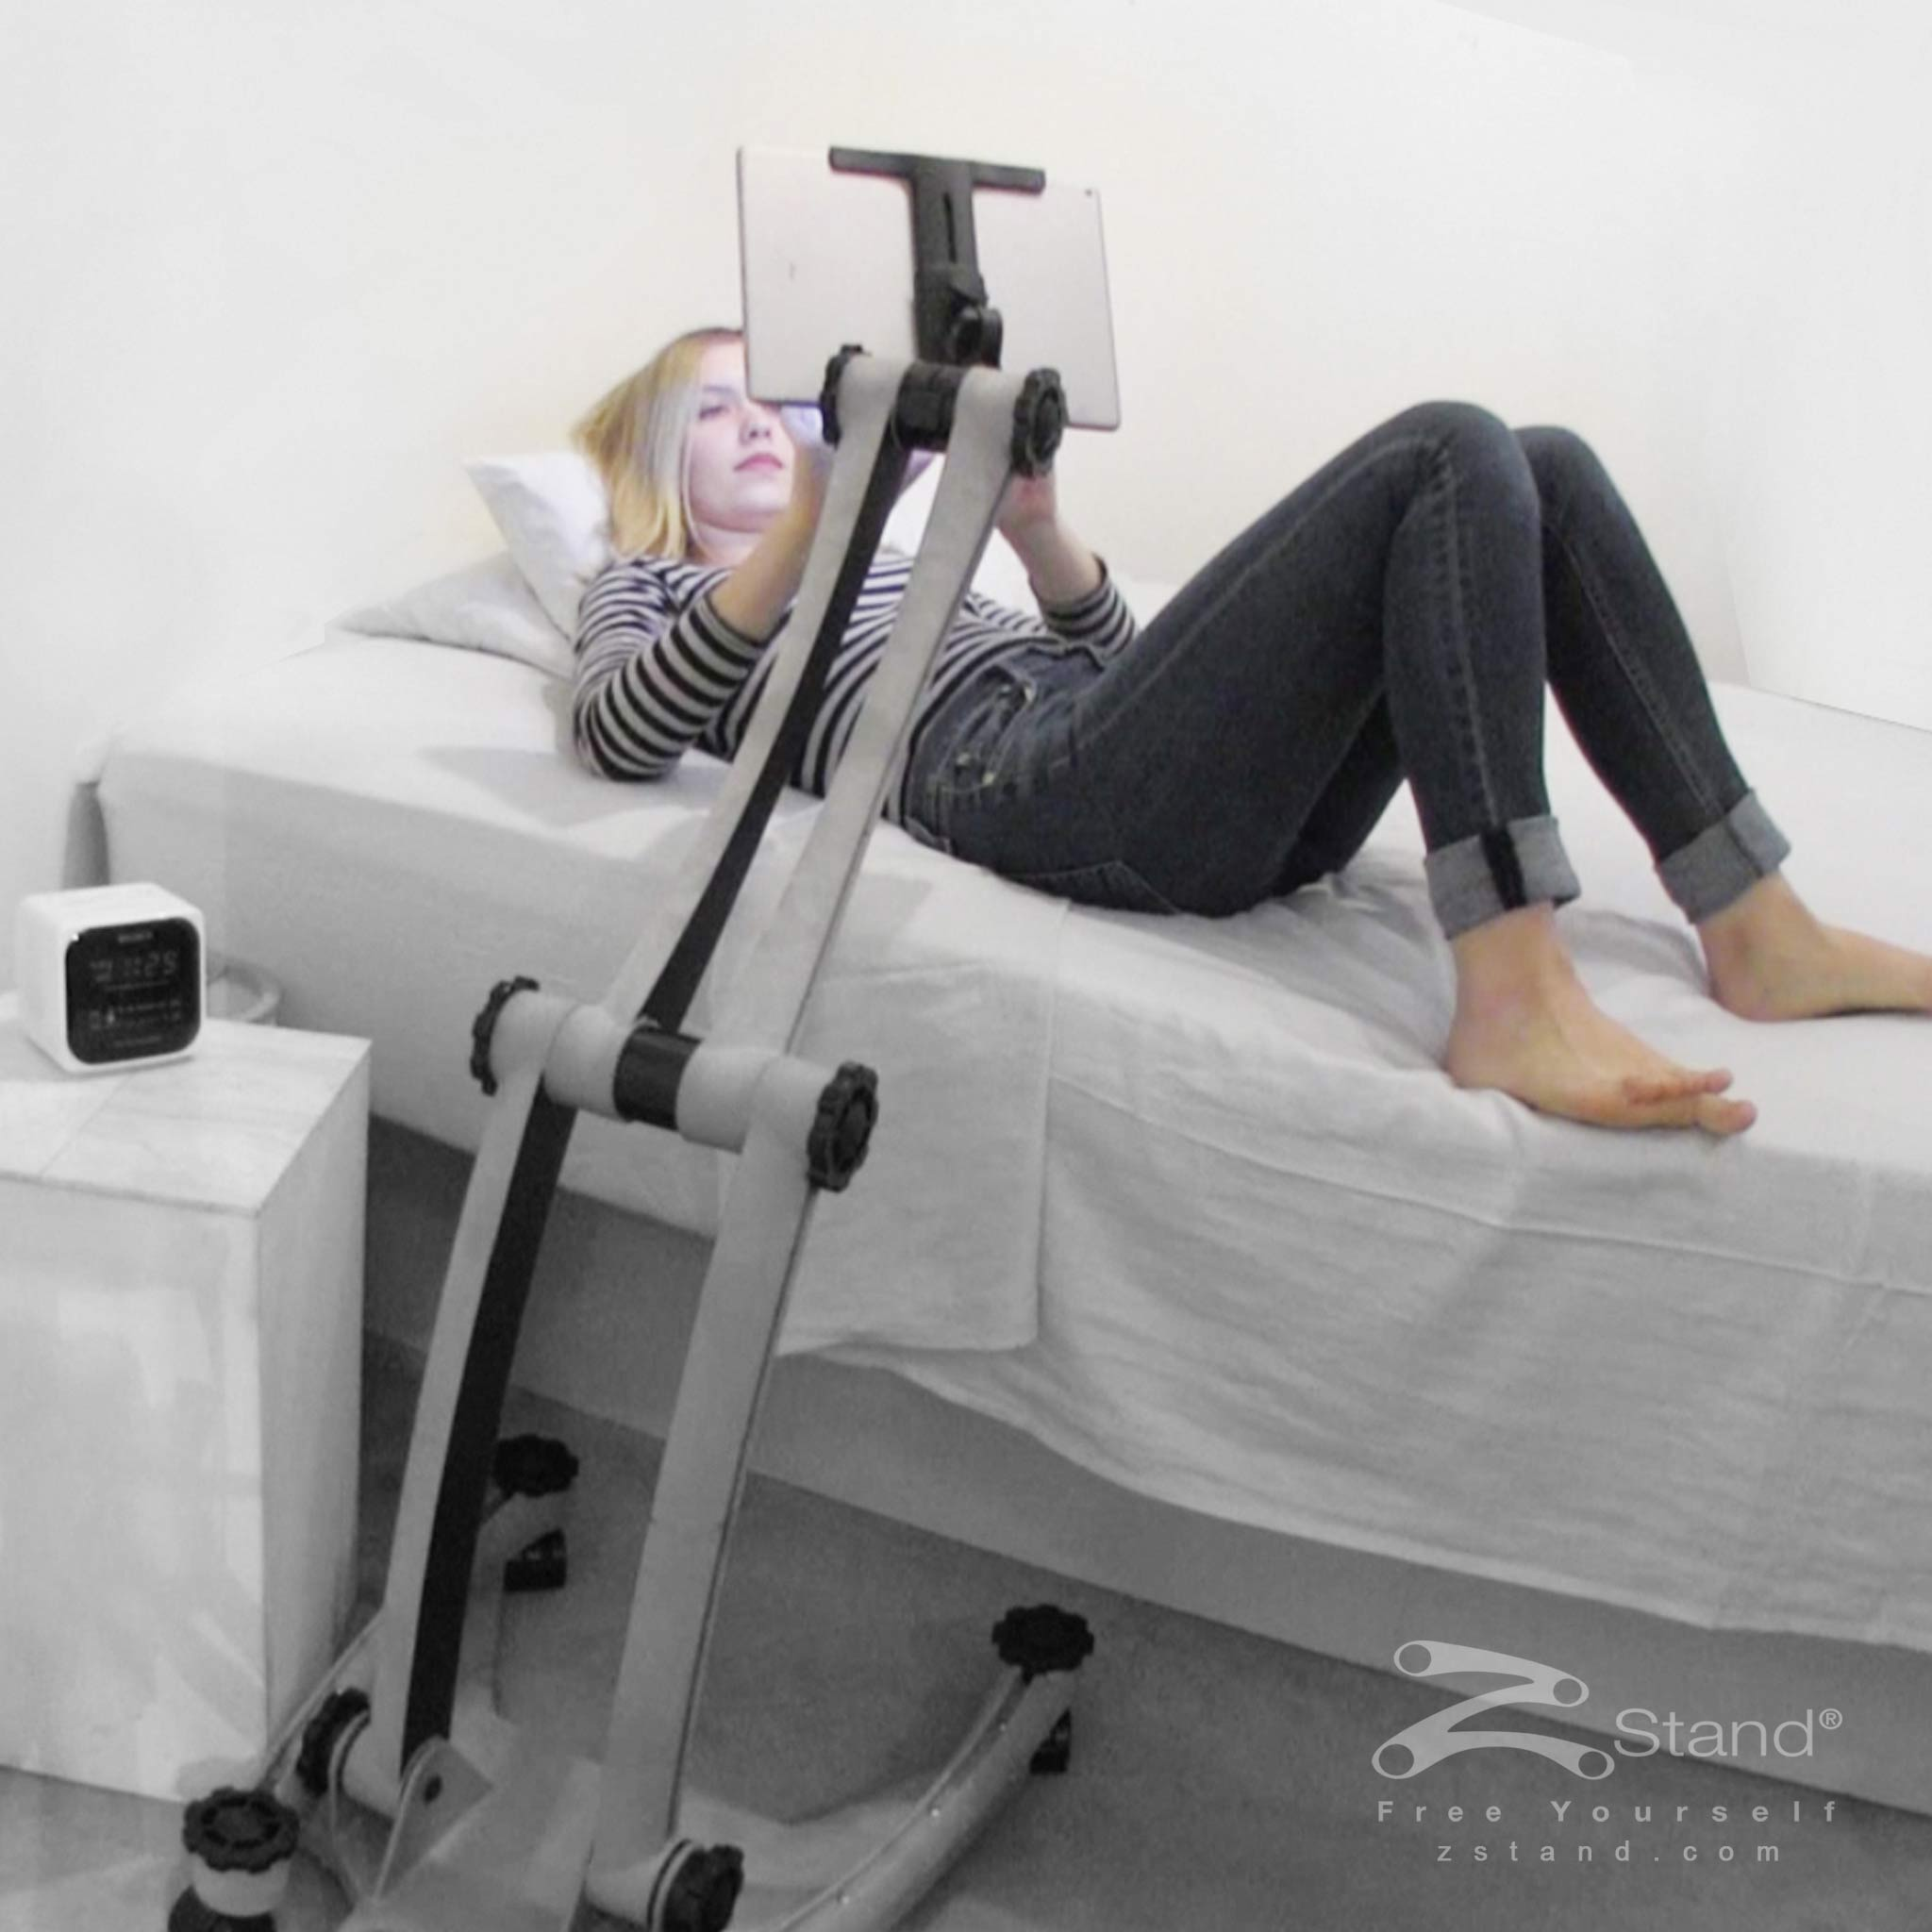 Image of a woman lying down in bed enjoying her tablet device hands free thanks to the ZStand Sportster.